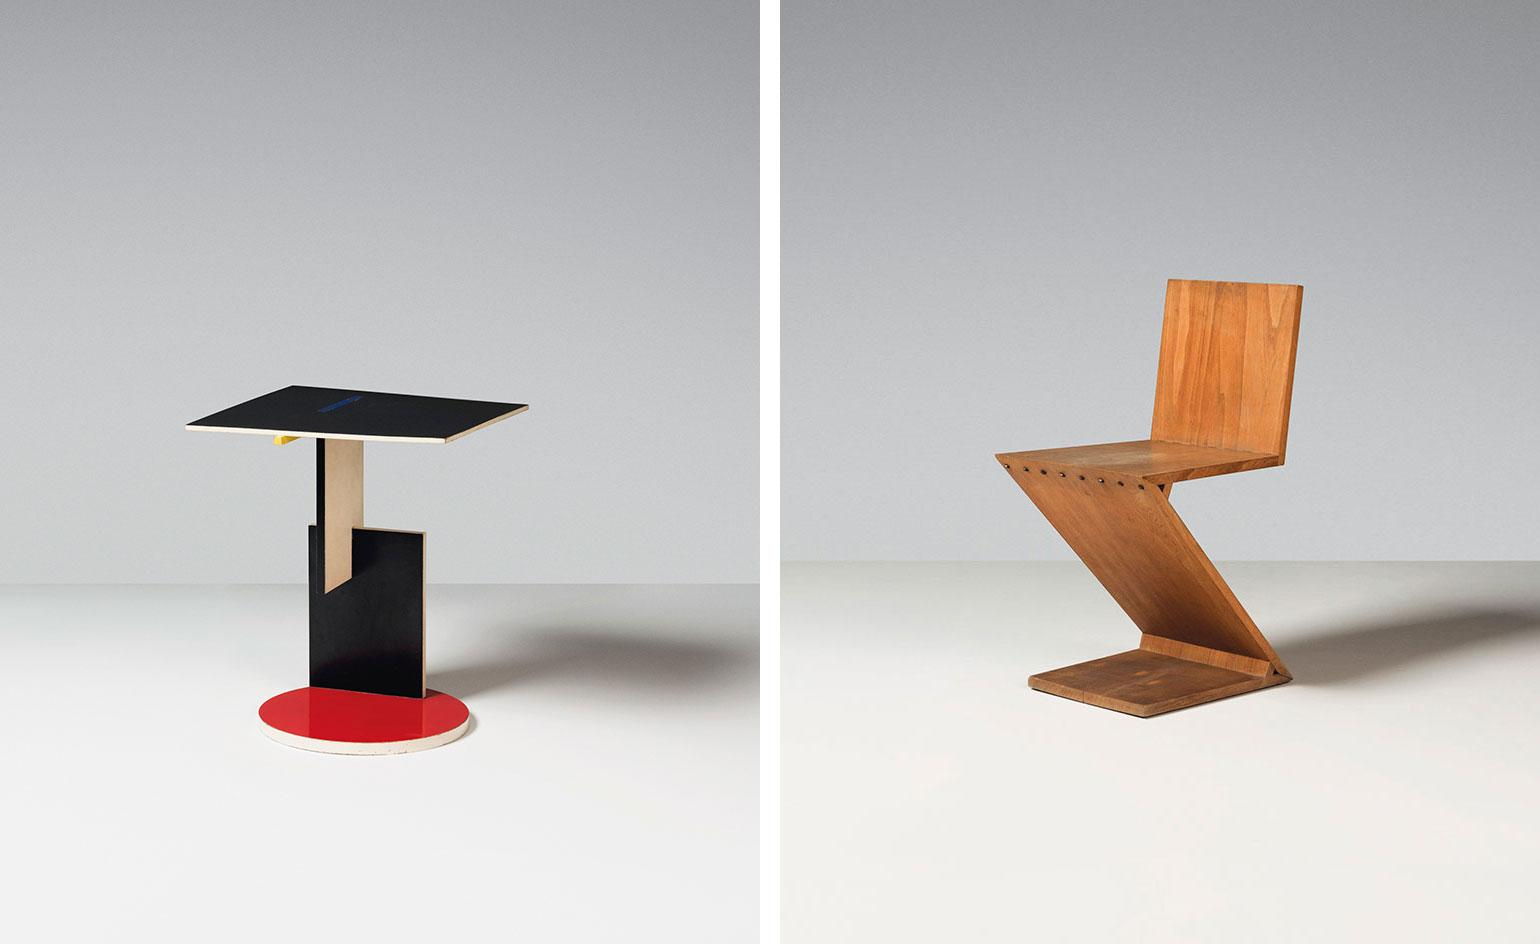 Gerrit Rietveld's collection of Housden furniture goes on sale at Christie's